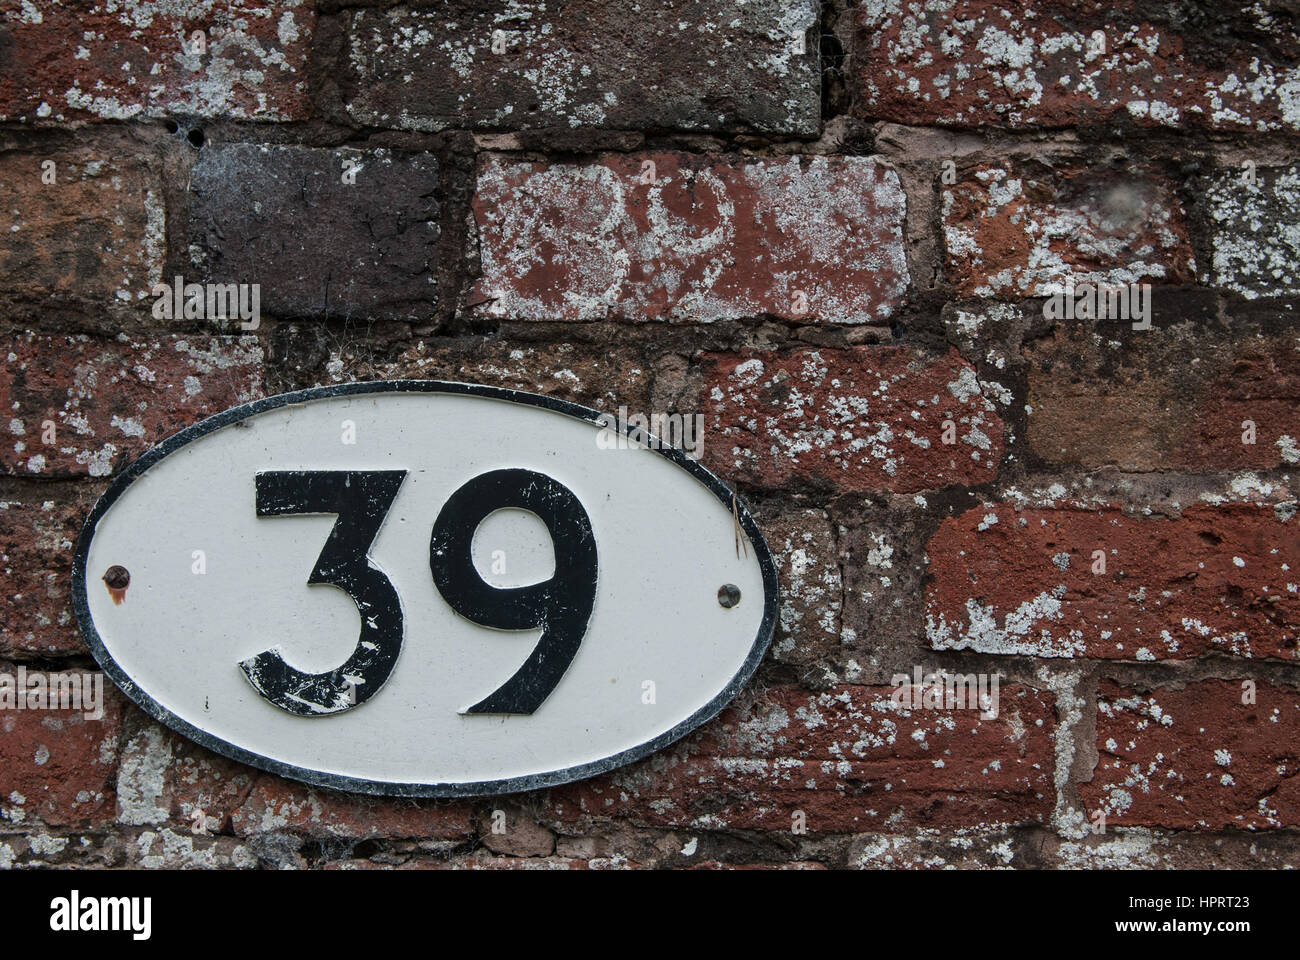 An oval plaque depicting the number 39 against a brick background. - Stock Image